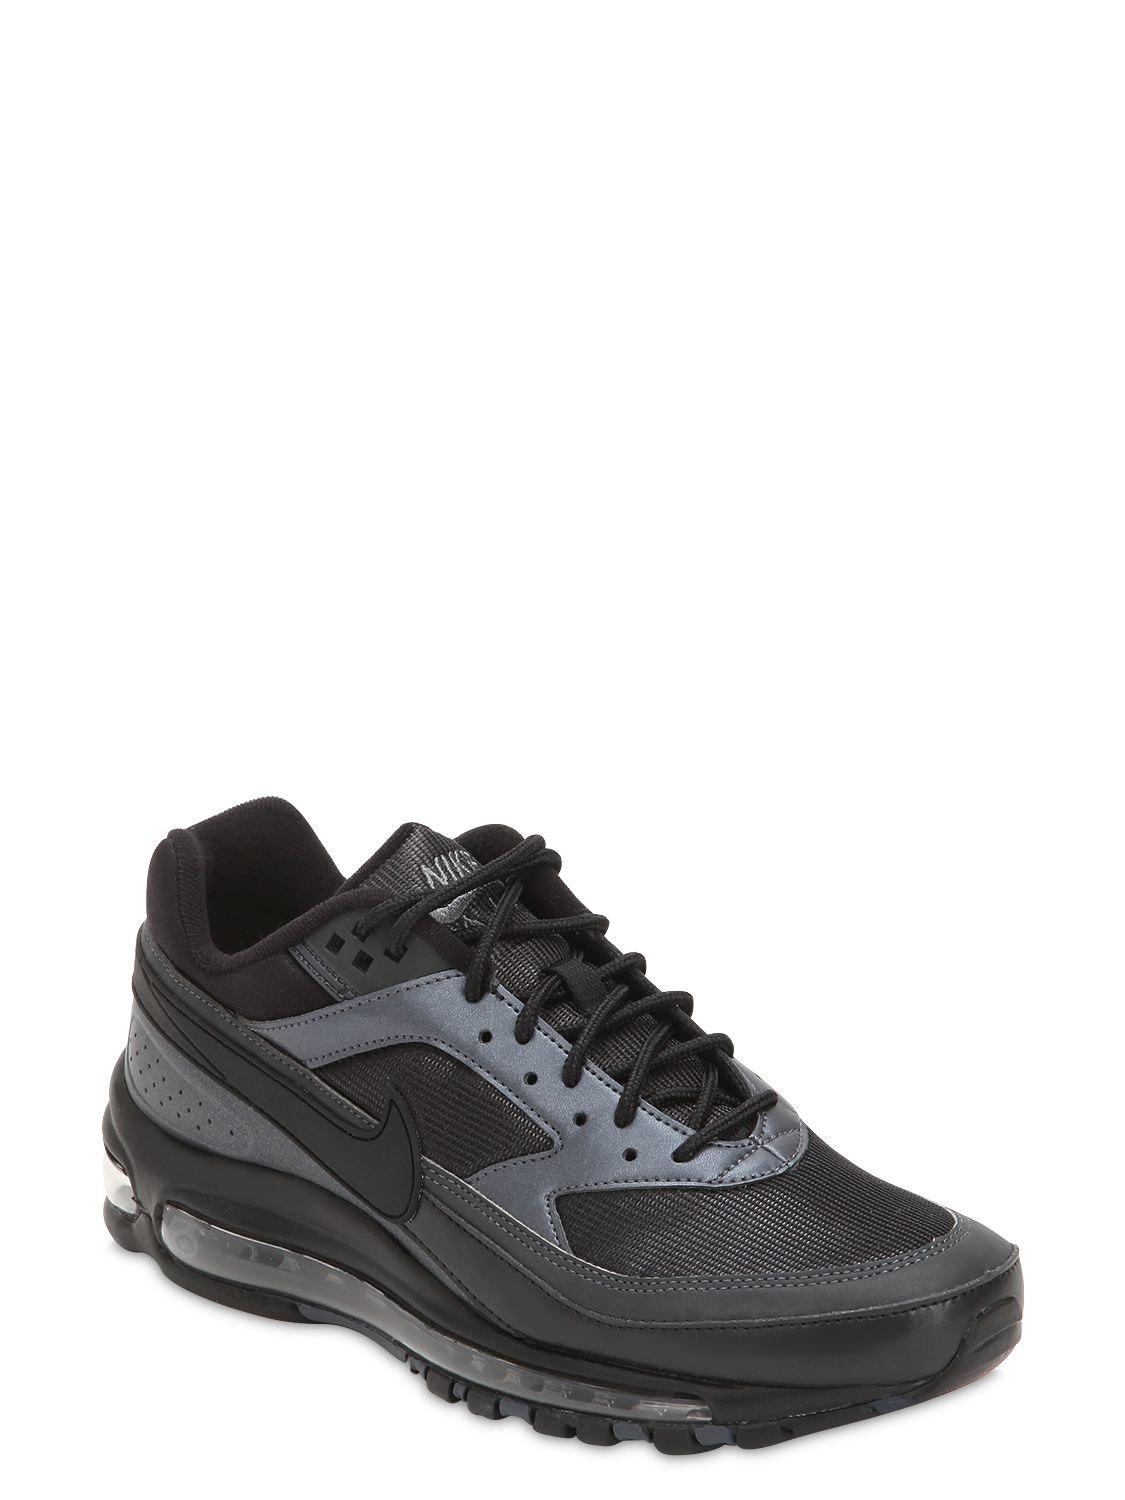 ef854f4e9533 Lyst - Nike Air Max 97 bw Sneakers in Black for Men